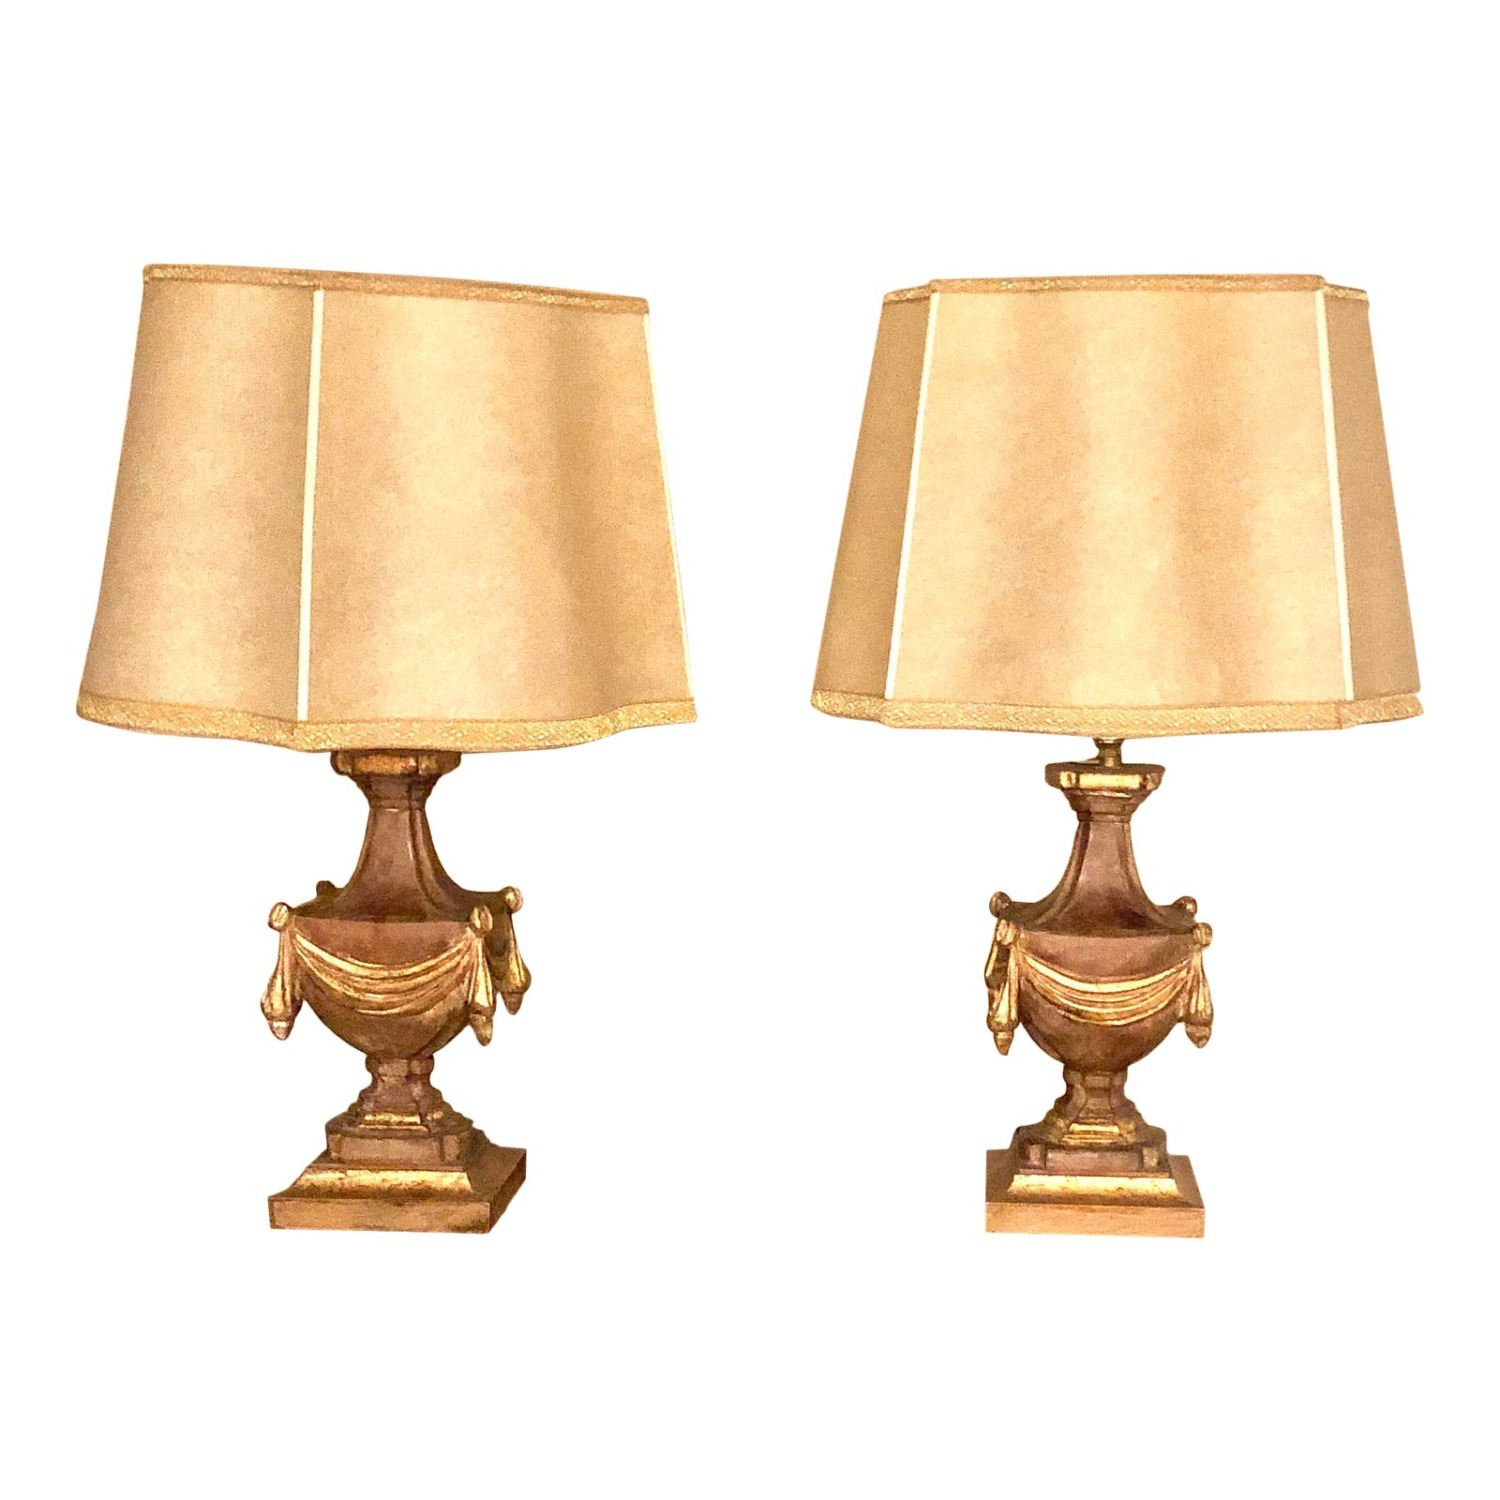 Pair of Traditional Gilt Lamps With Silk Shades - image-2